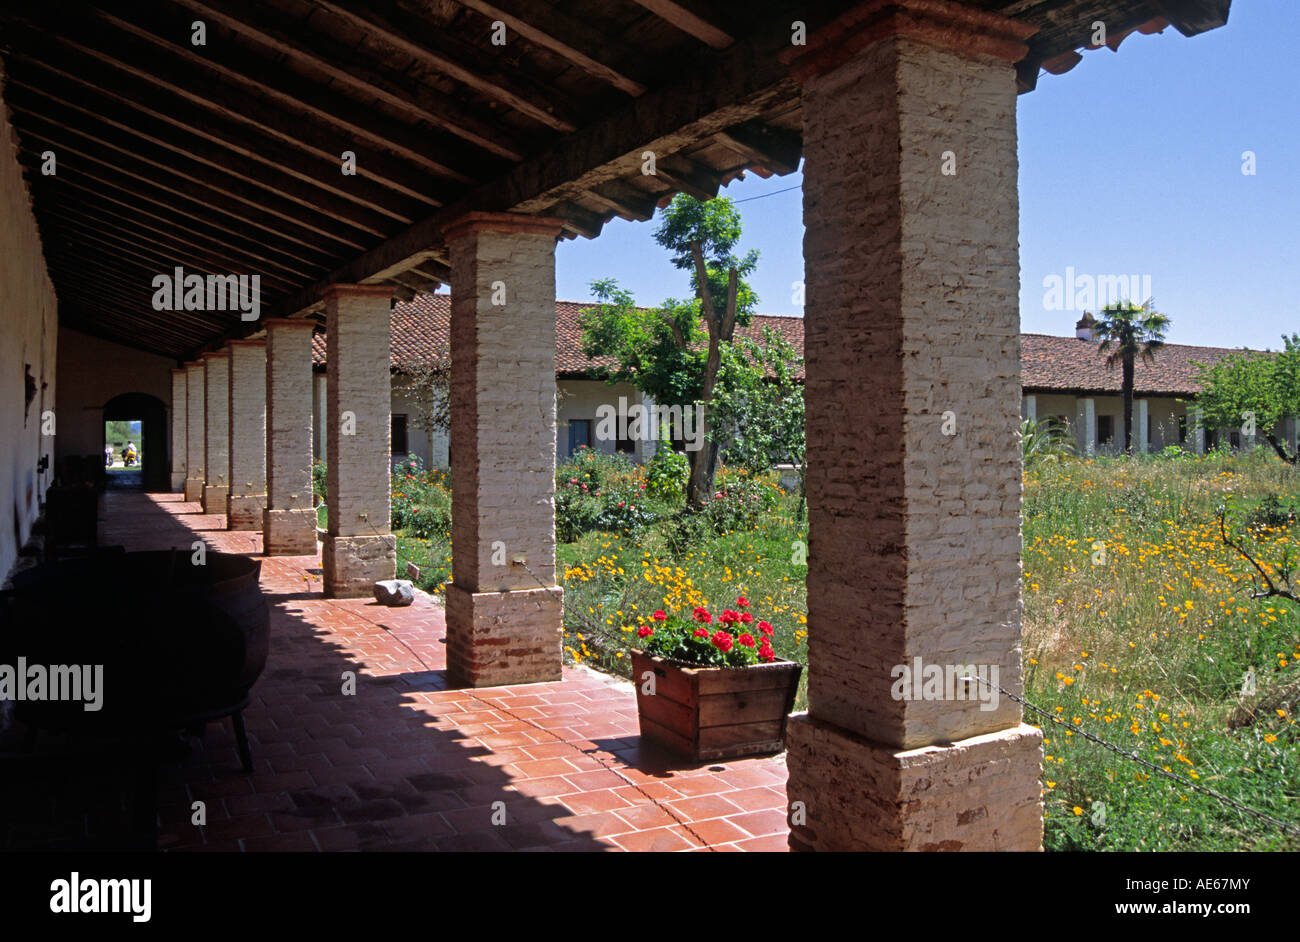 California mission style architecture - Spanish Style Walkway Courtyard At Mission San Antonio De Padua Built By Father Junipero Serra In 1771 California